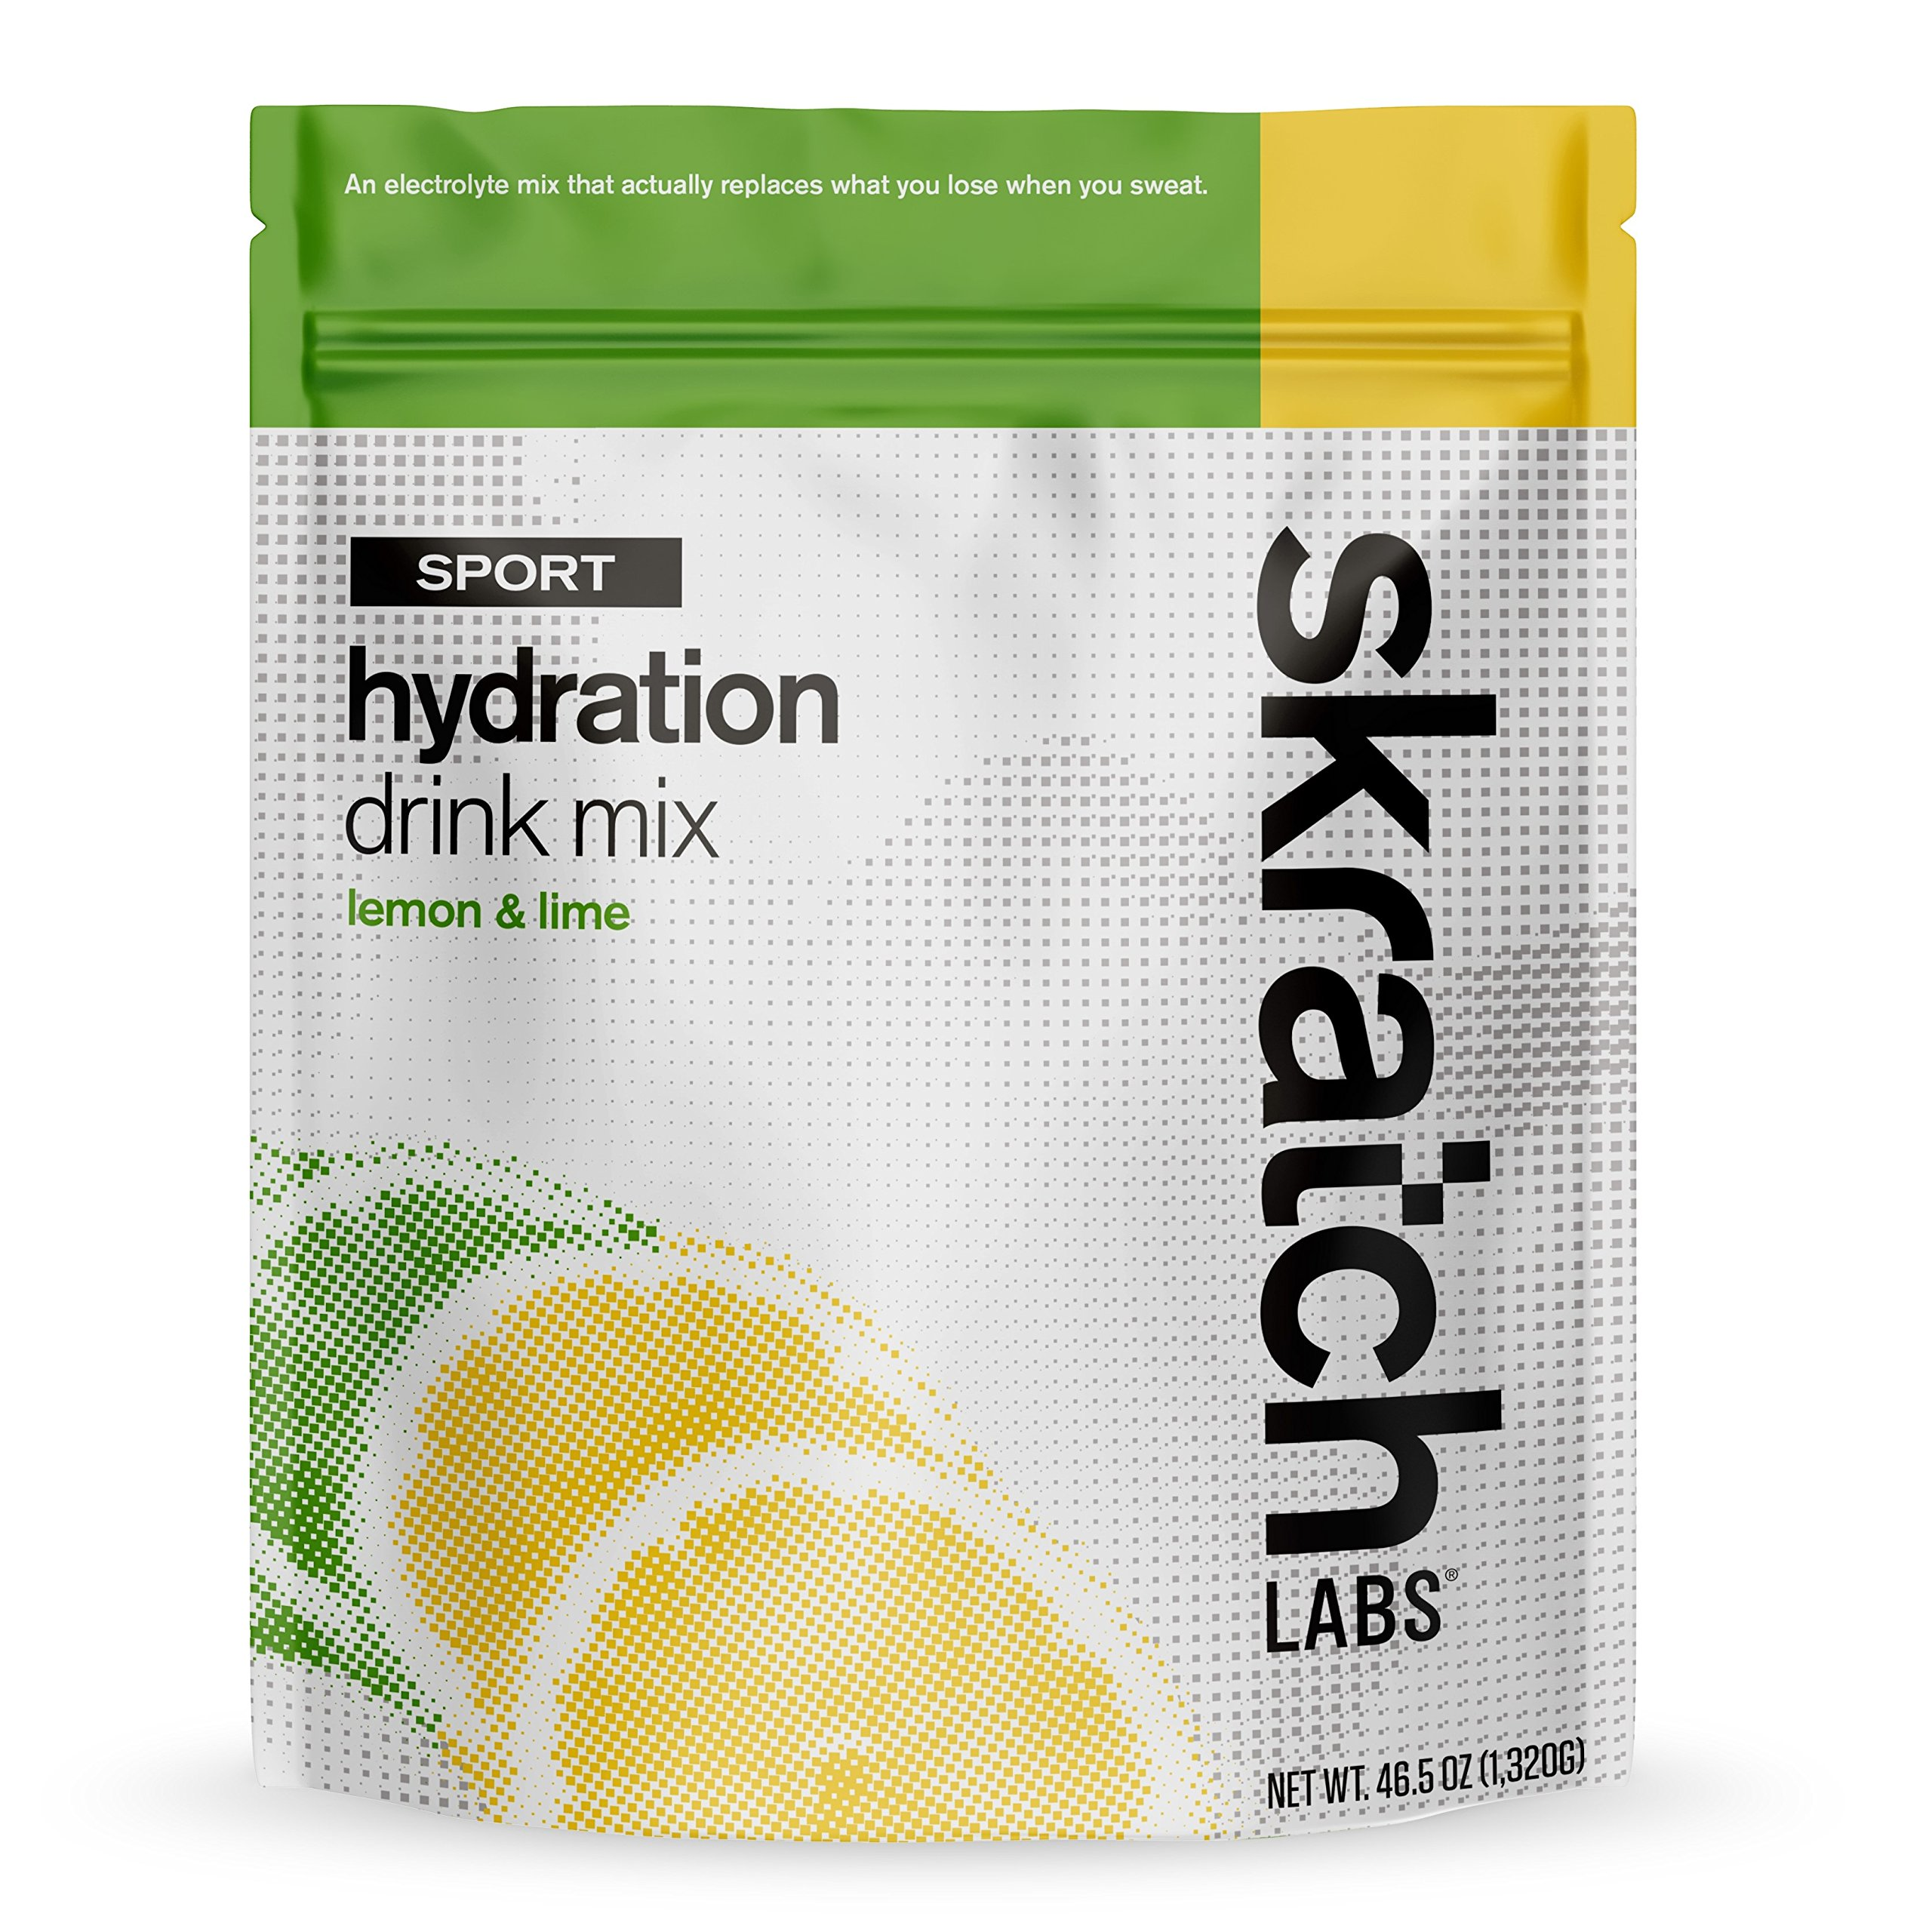 SKRATCH LABS Sport Hydration Drink Mix, Lemon Lime (46.5 oz, 60 servings) - Natural, Electrolyte Powder Developed for Athletes and Sports Performance, Gluten Free, Vegan, Kosher by Skratch Labs